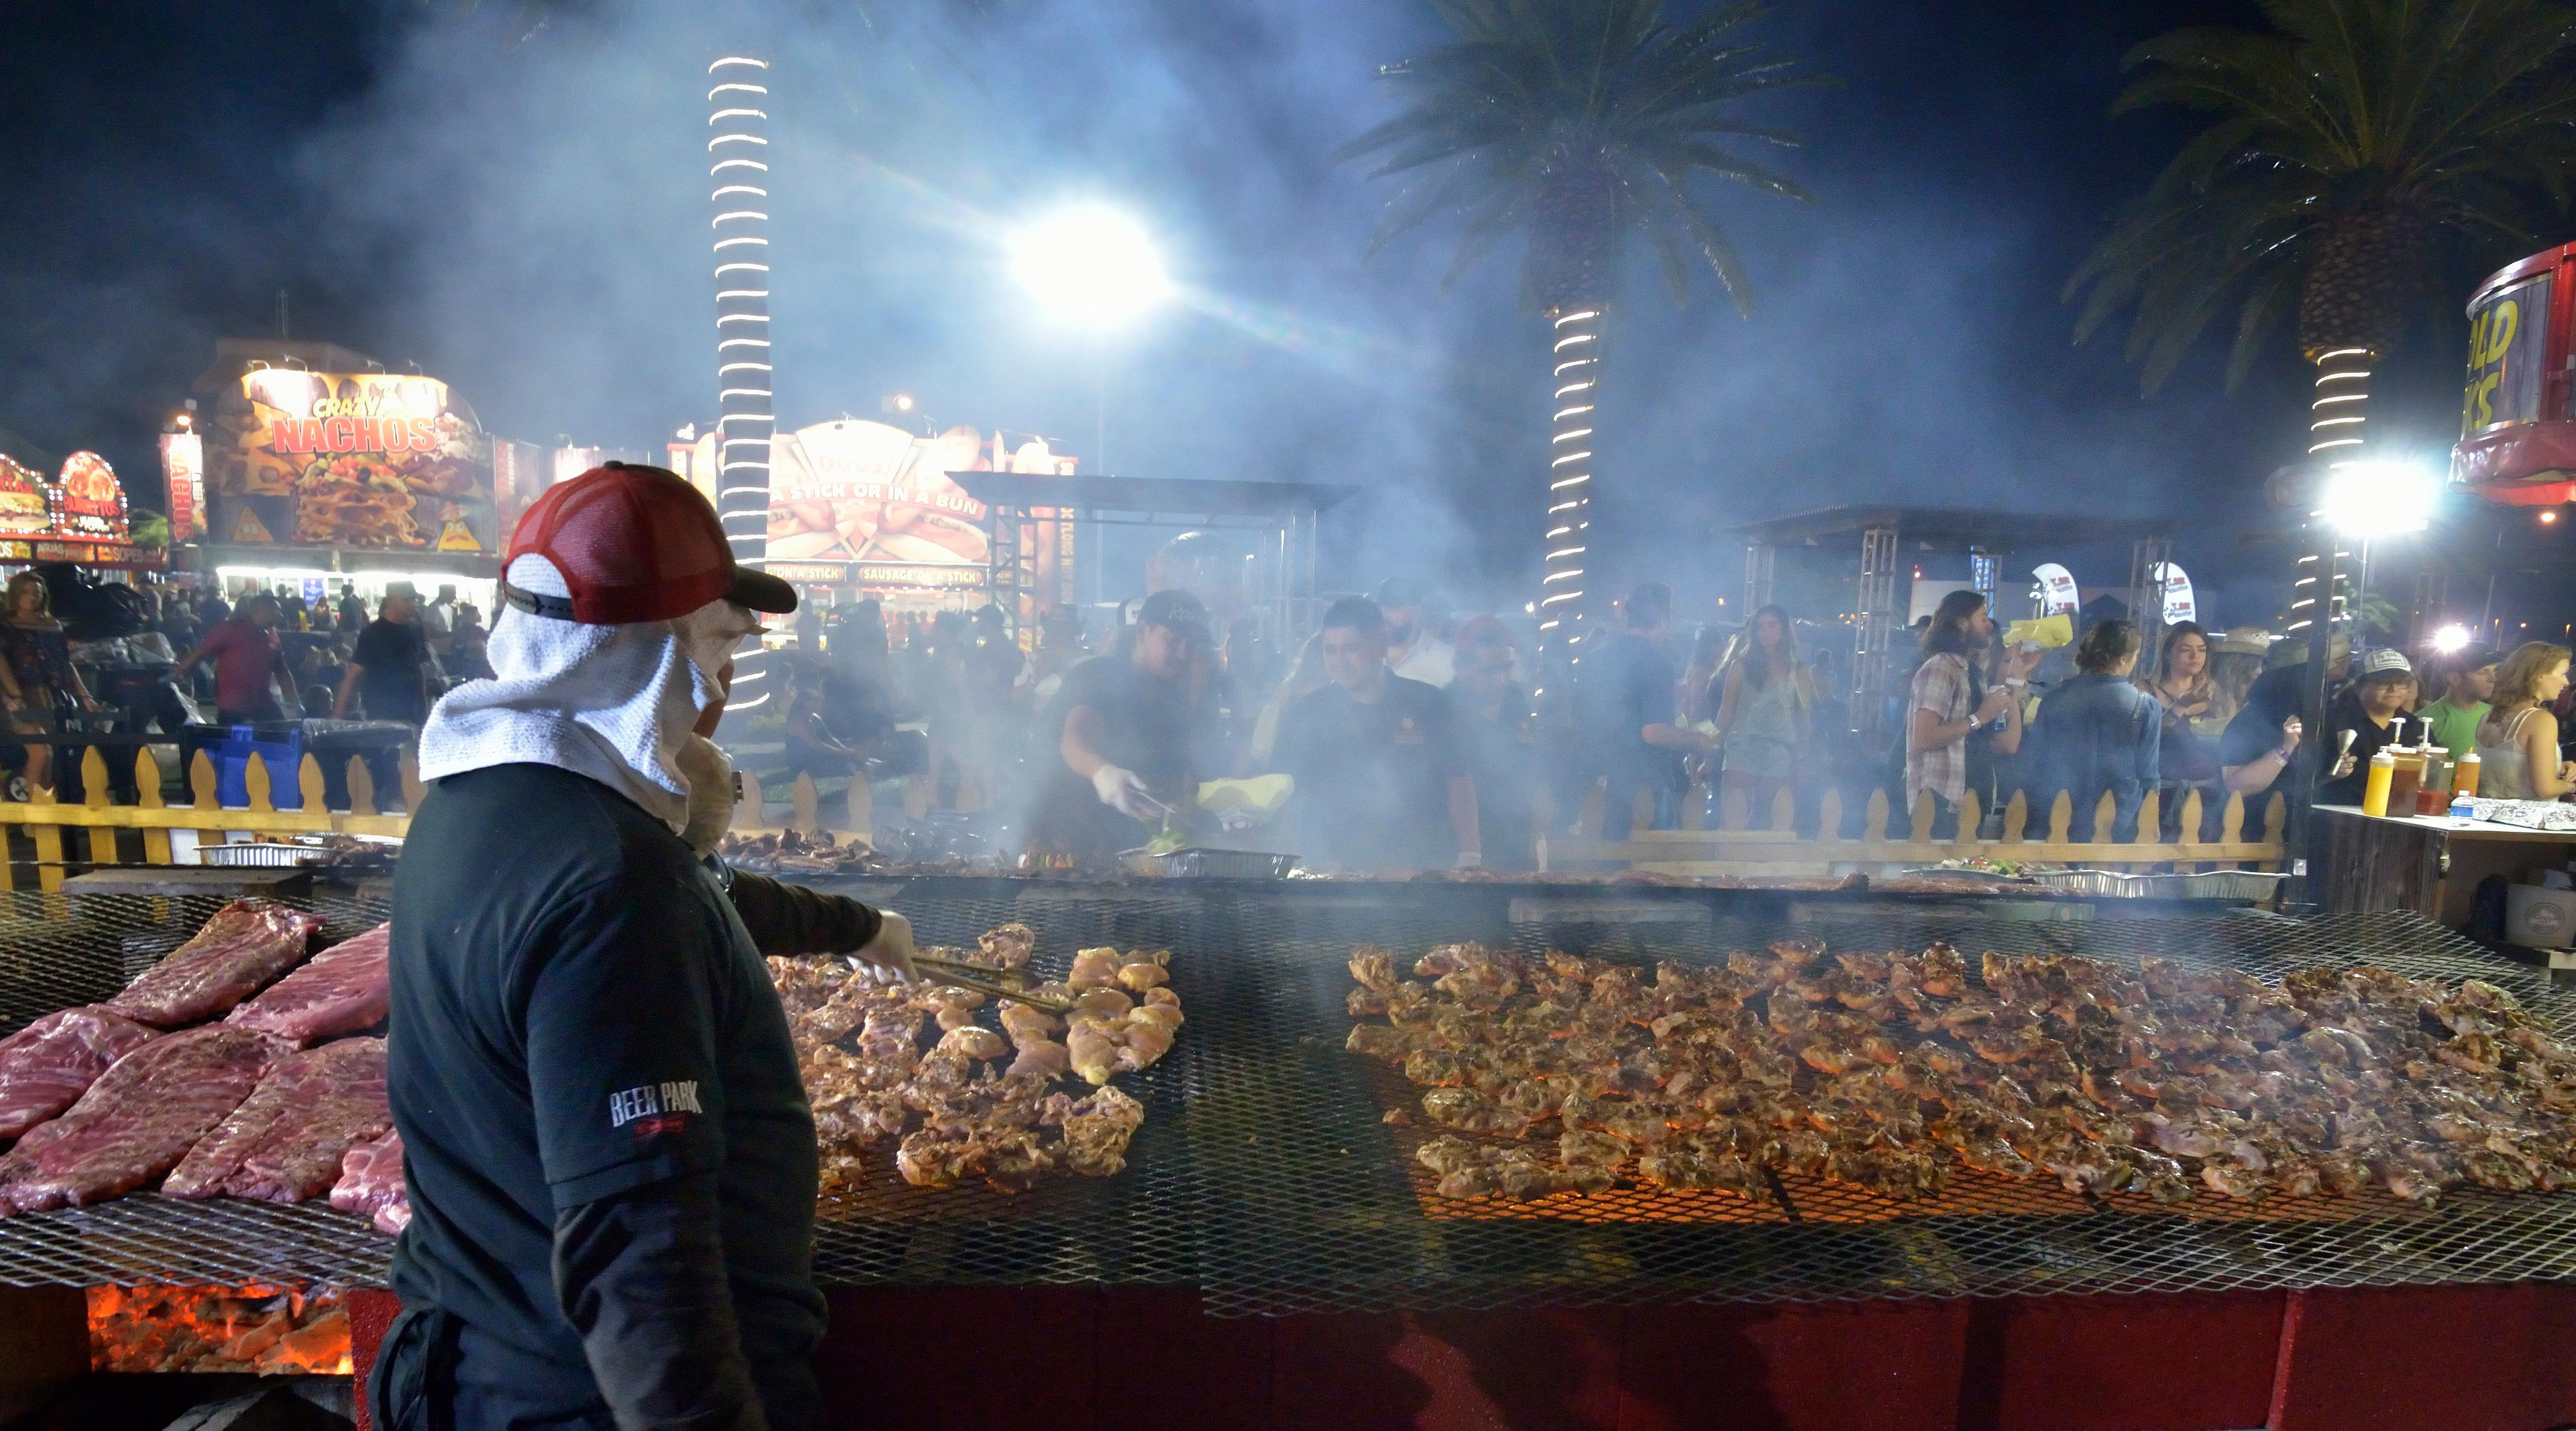 Barbecue is prepared at the Harvest Market during the Route 91 Harvest festival on Las Vegas Boulevard South in Las Vegas on Saturday, Sept. 30, 2017.  [Bill Hughes/Las Vegas News Bureau]